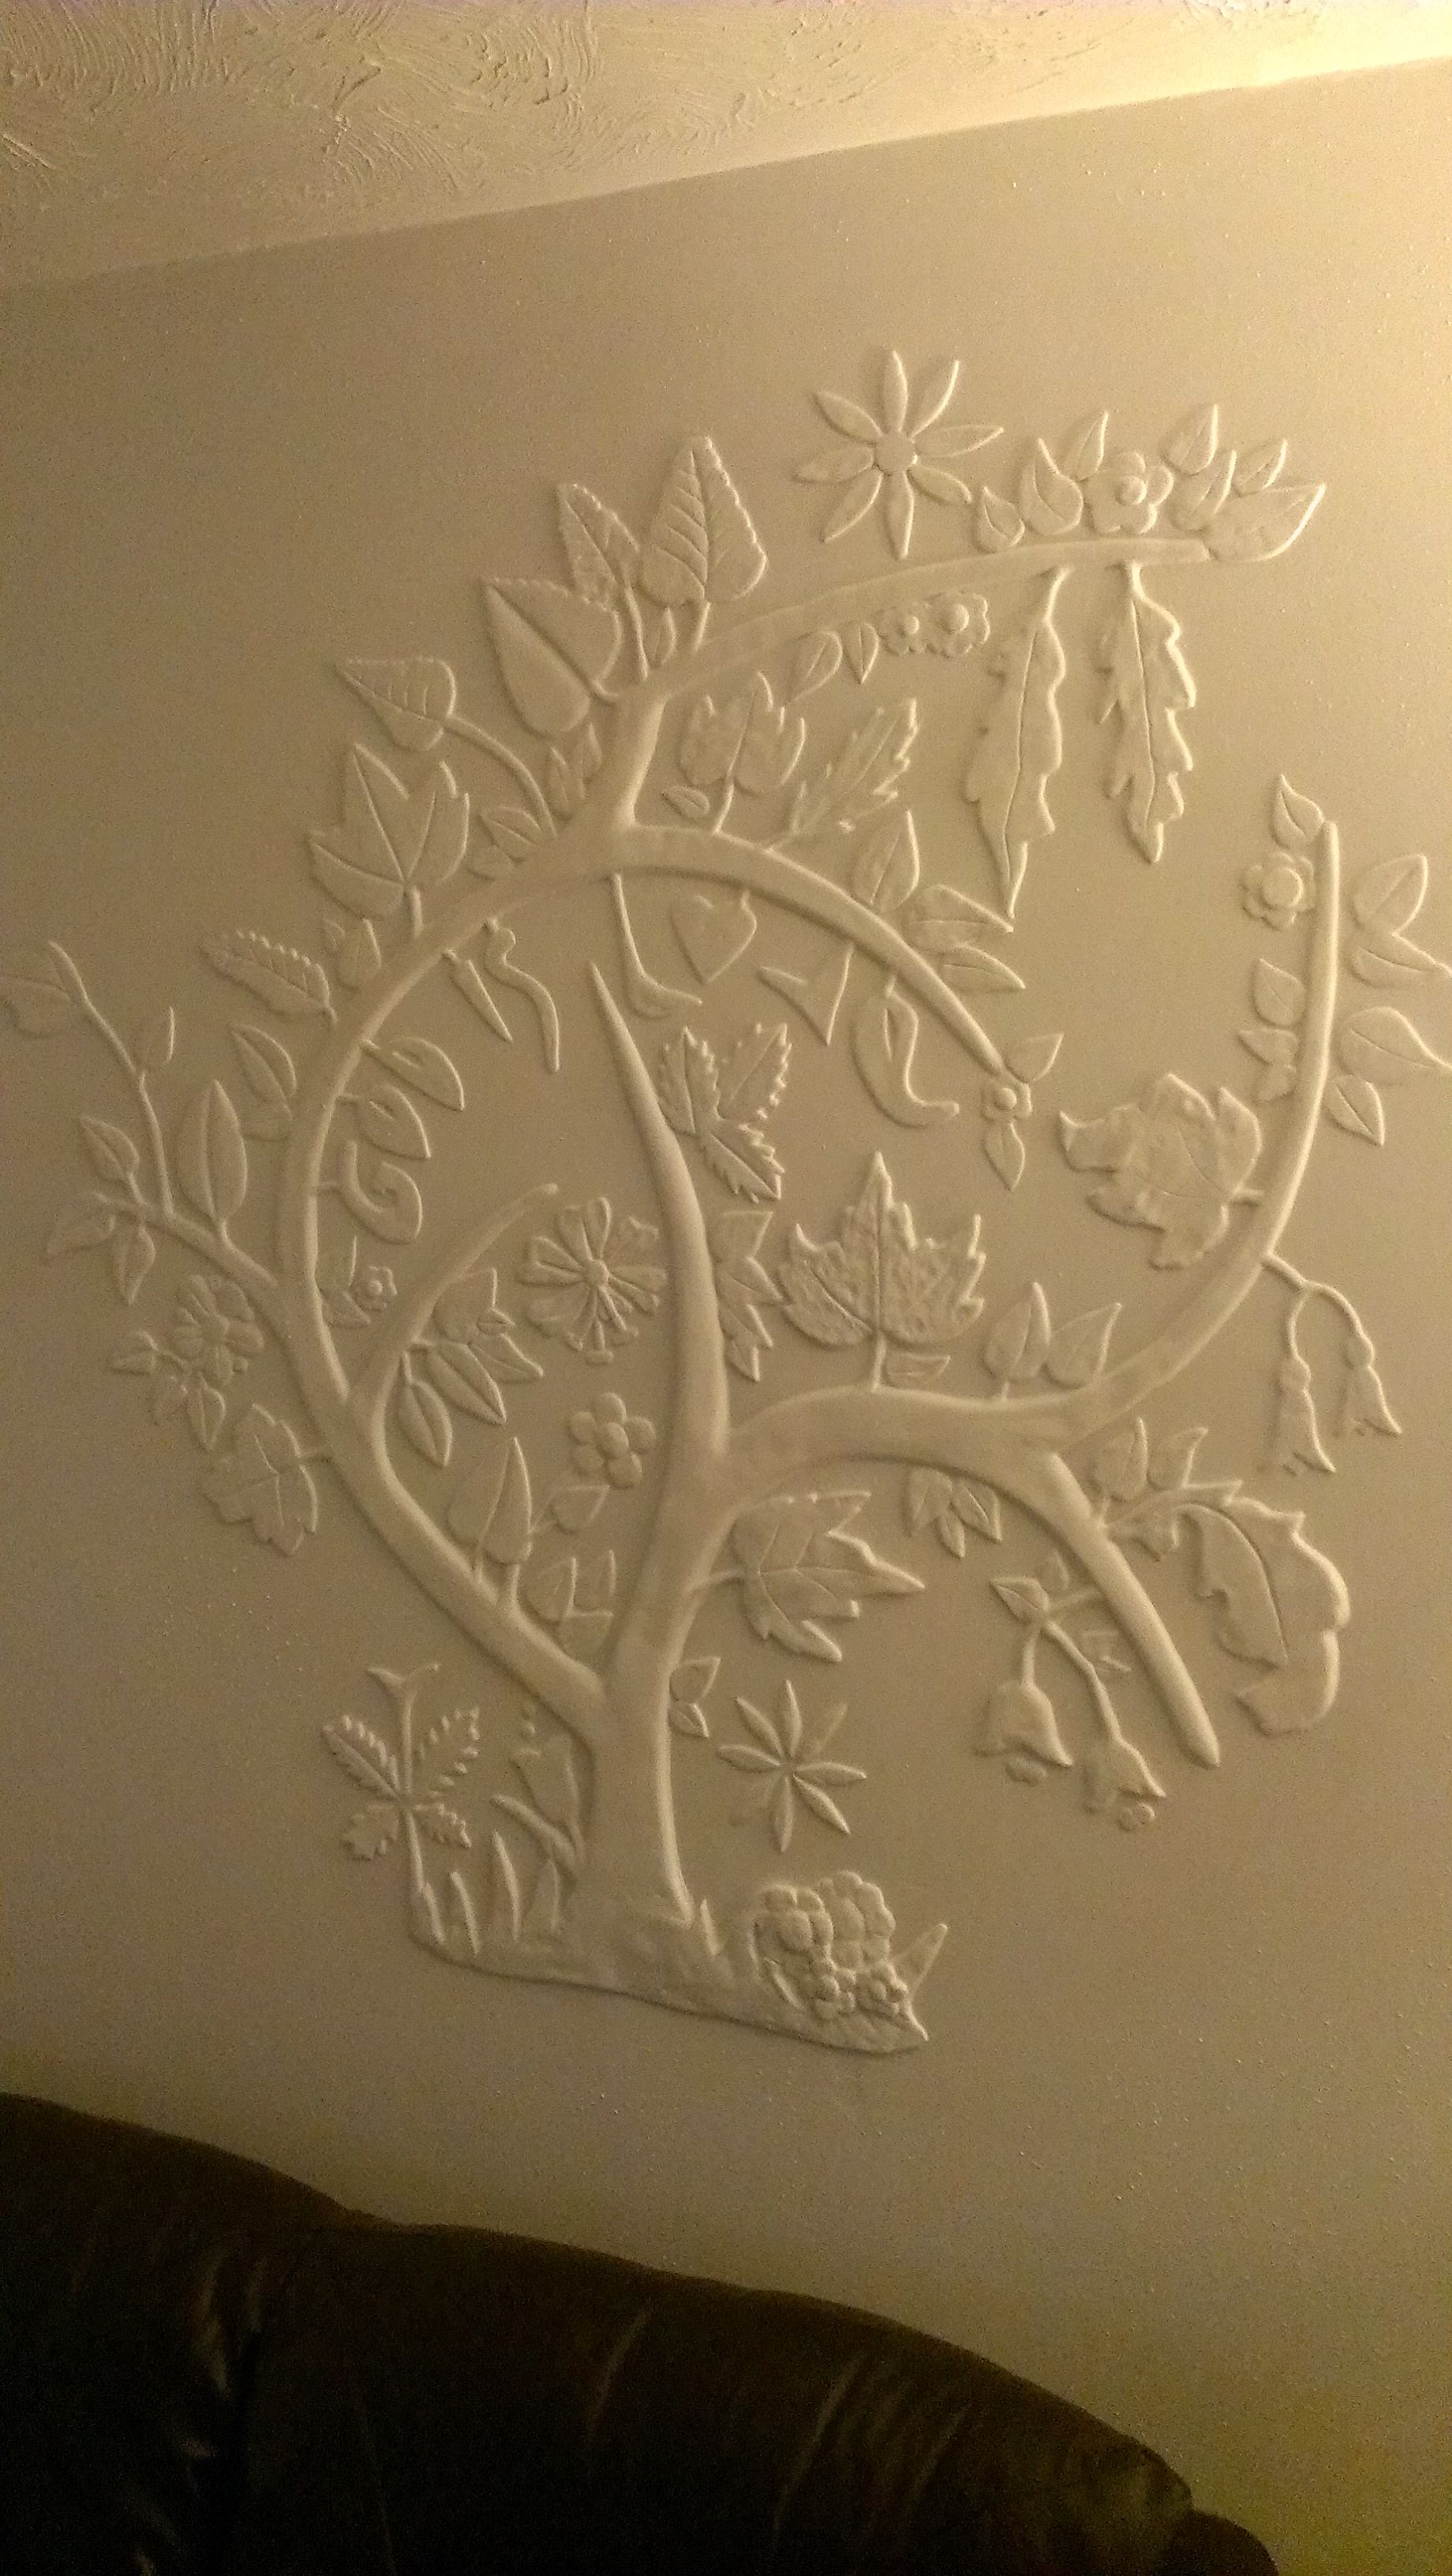 Plaster Wall Design Done With Finishing Plaster By Hand Craft